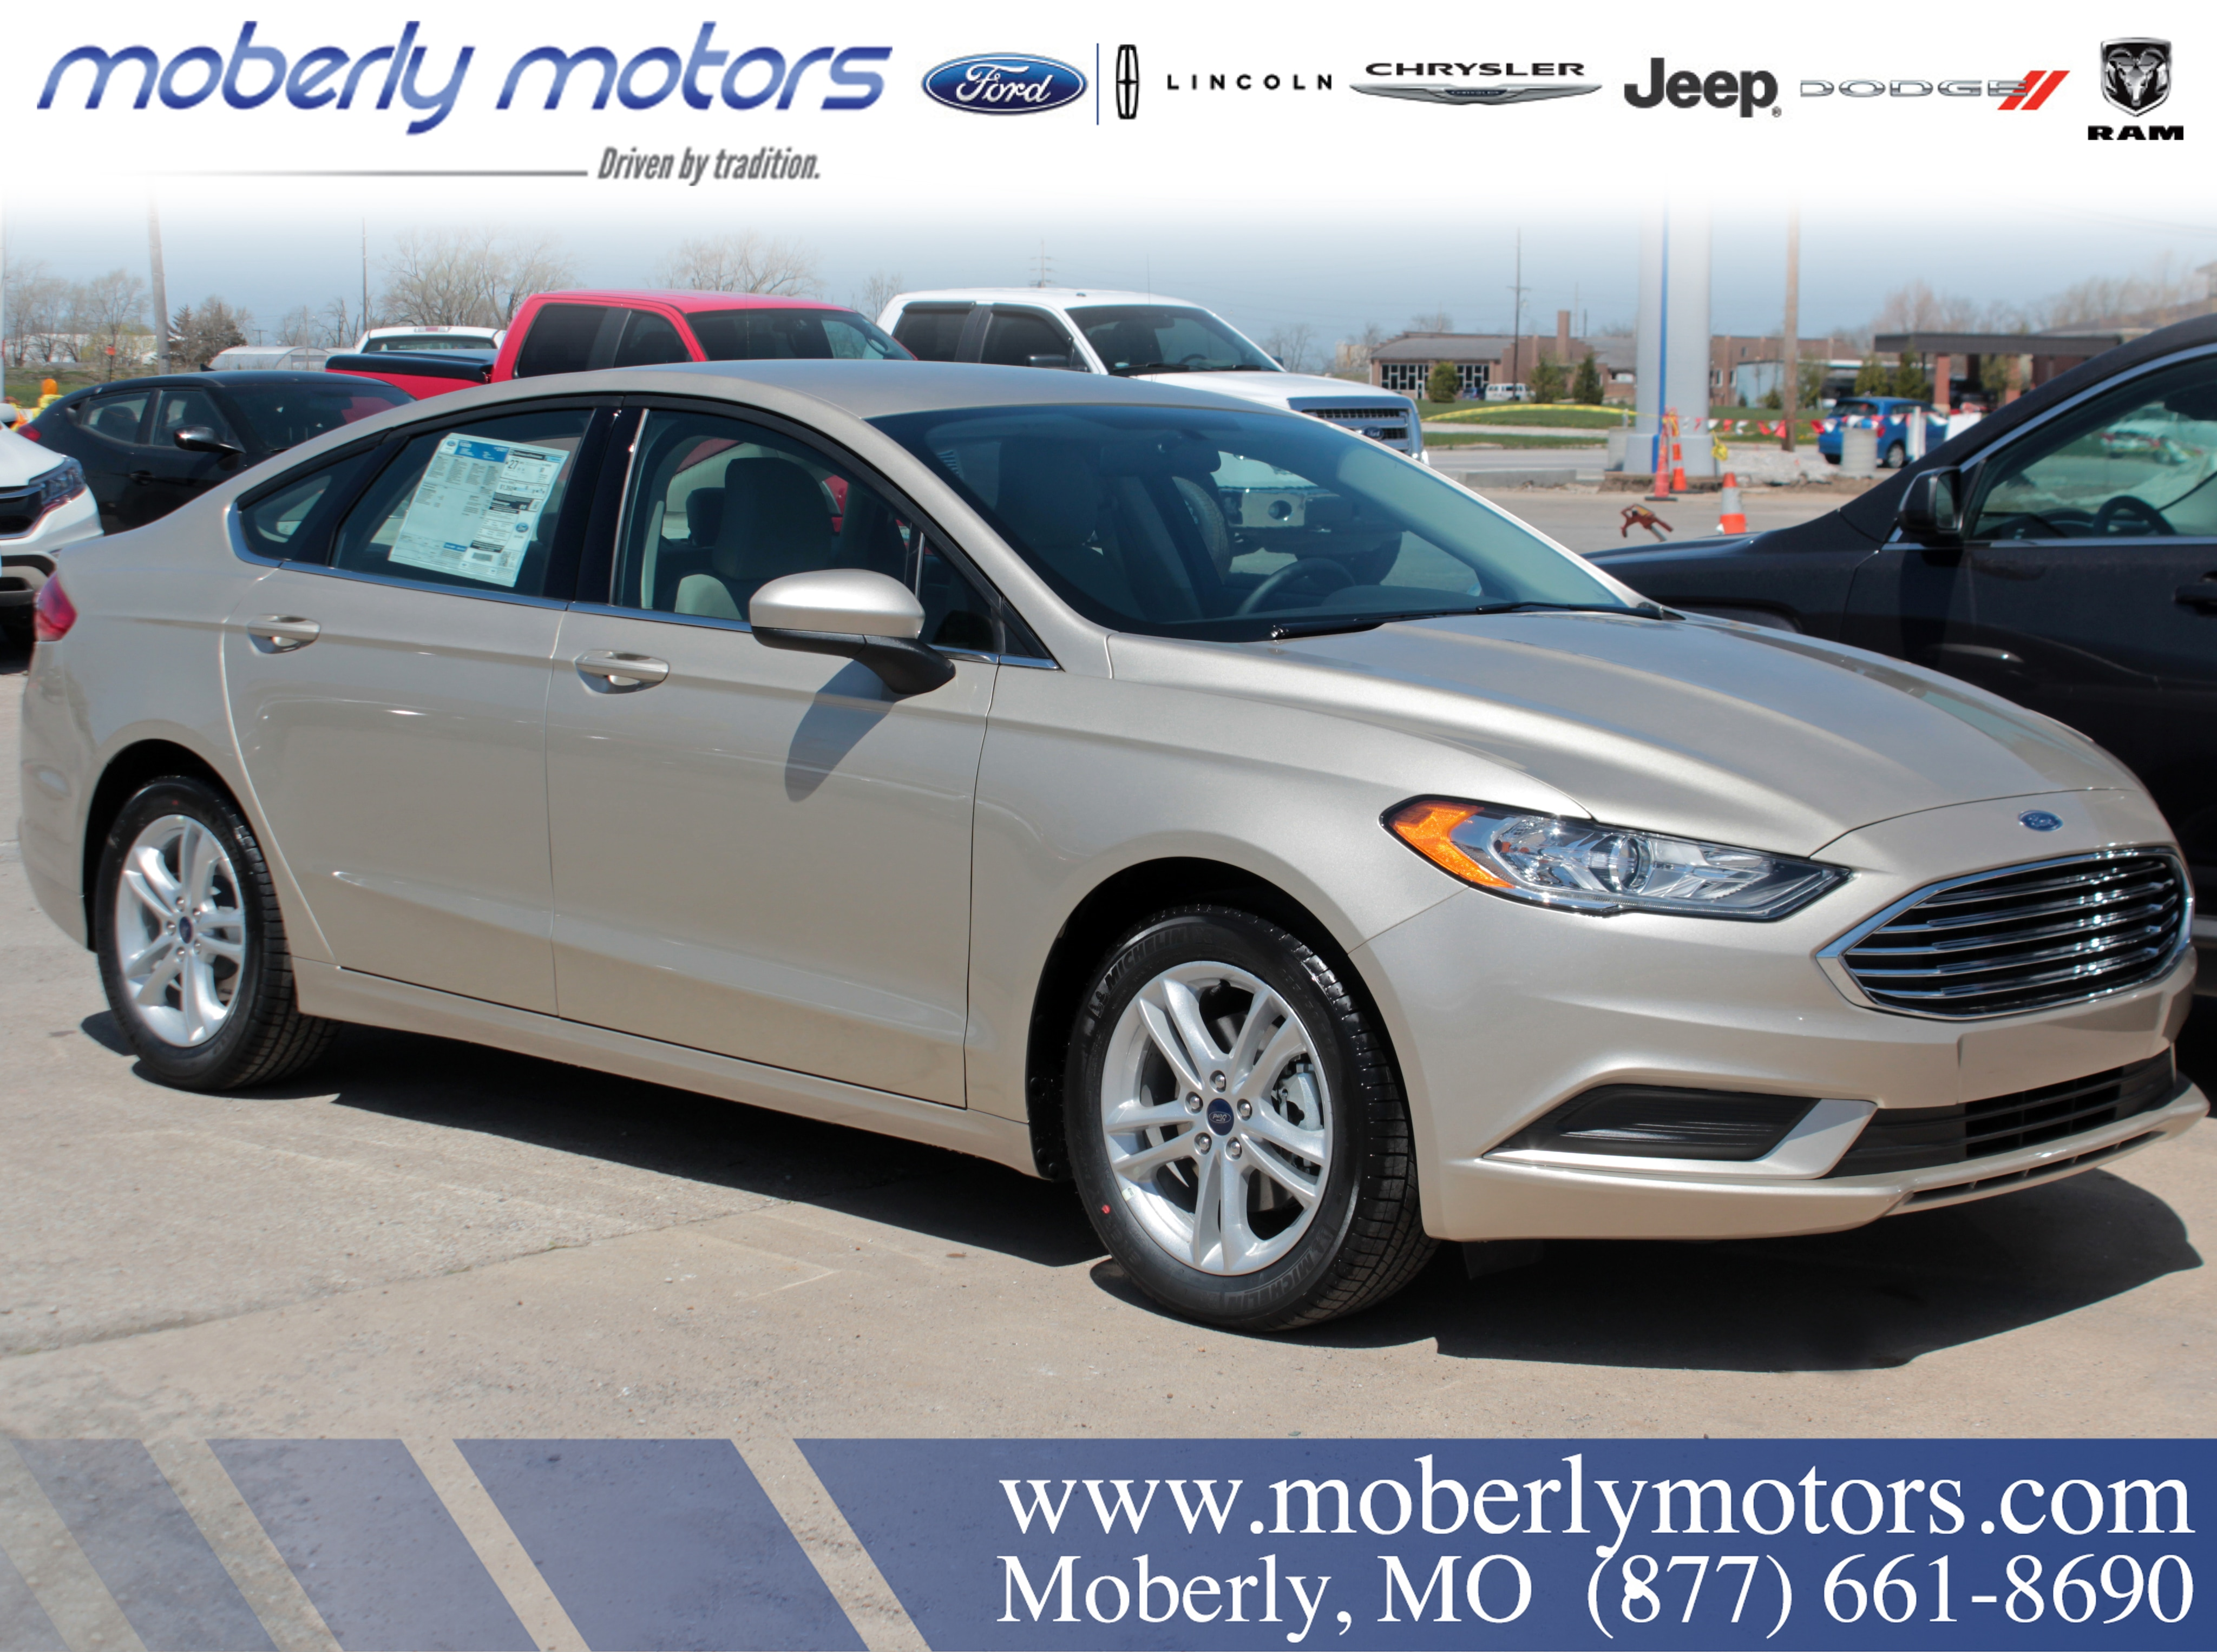 Rental Car Fleet And Prices Moberly Motors